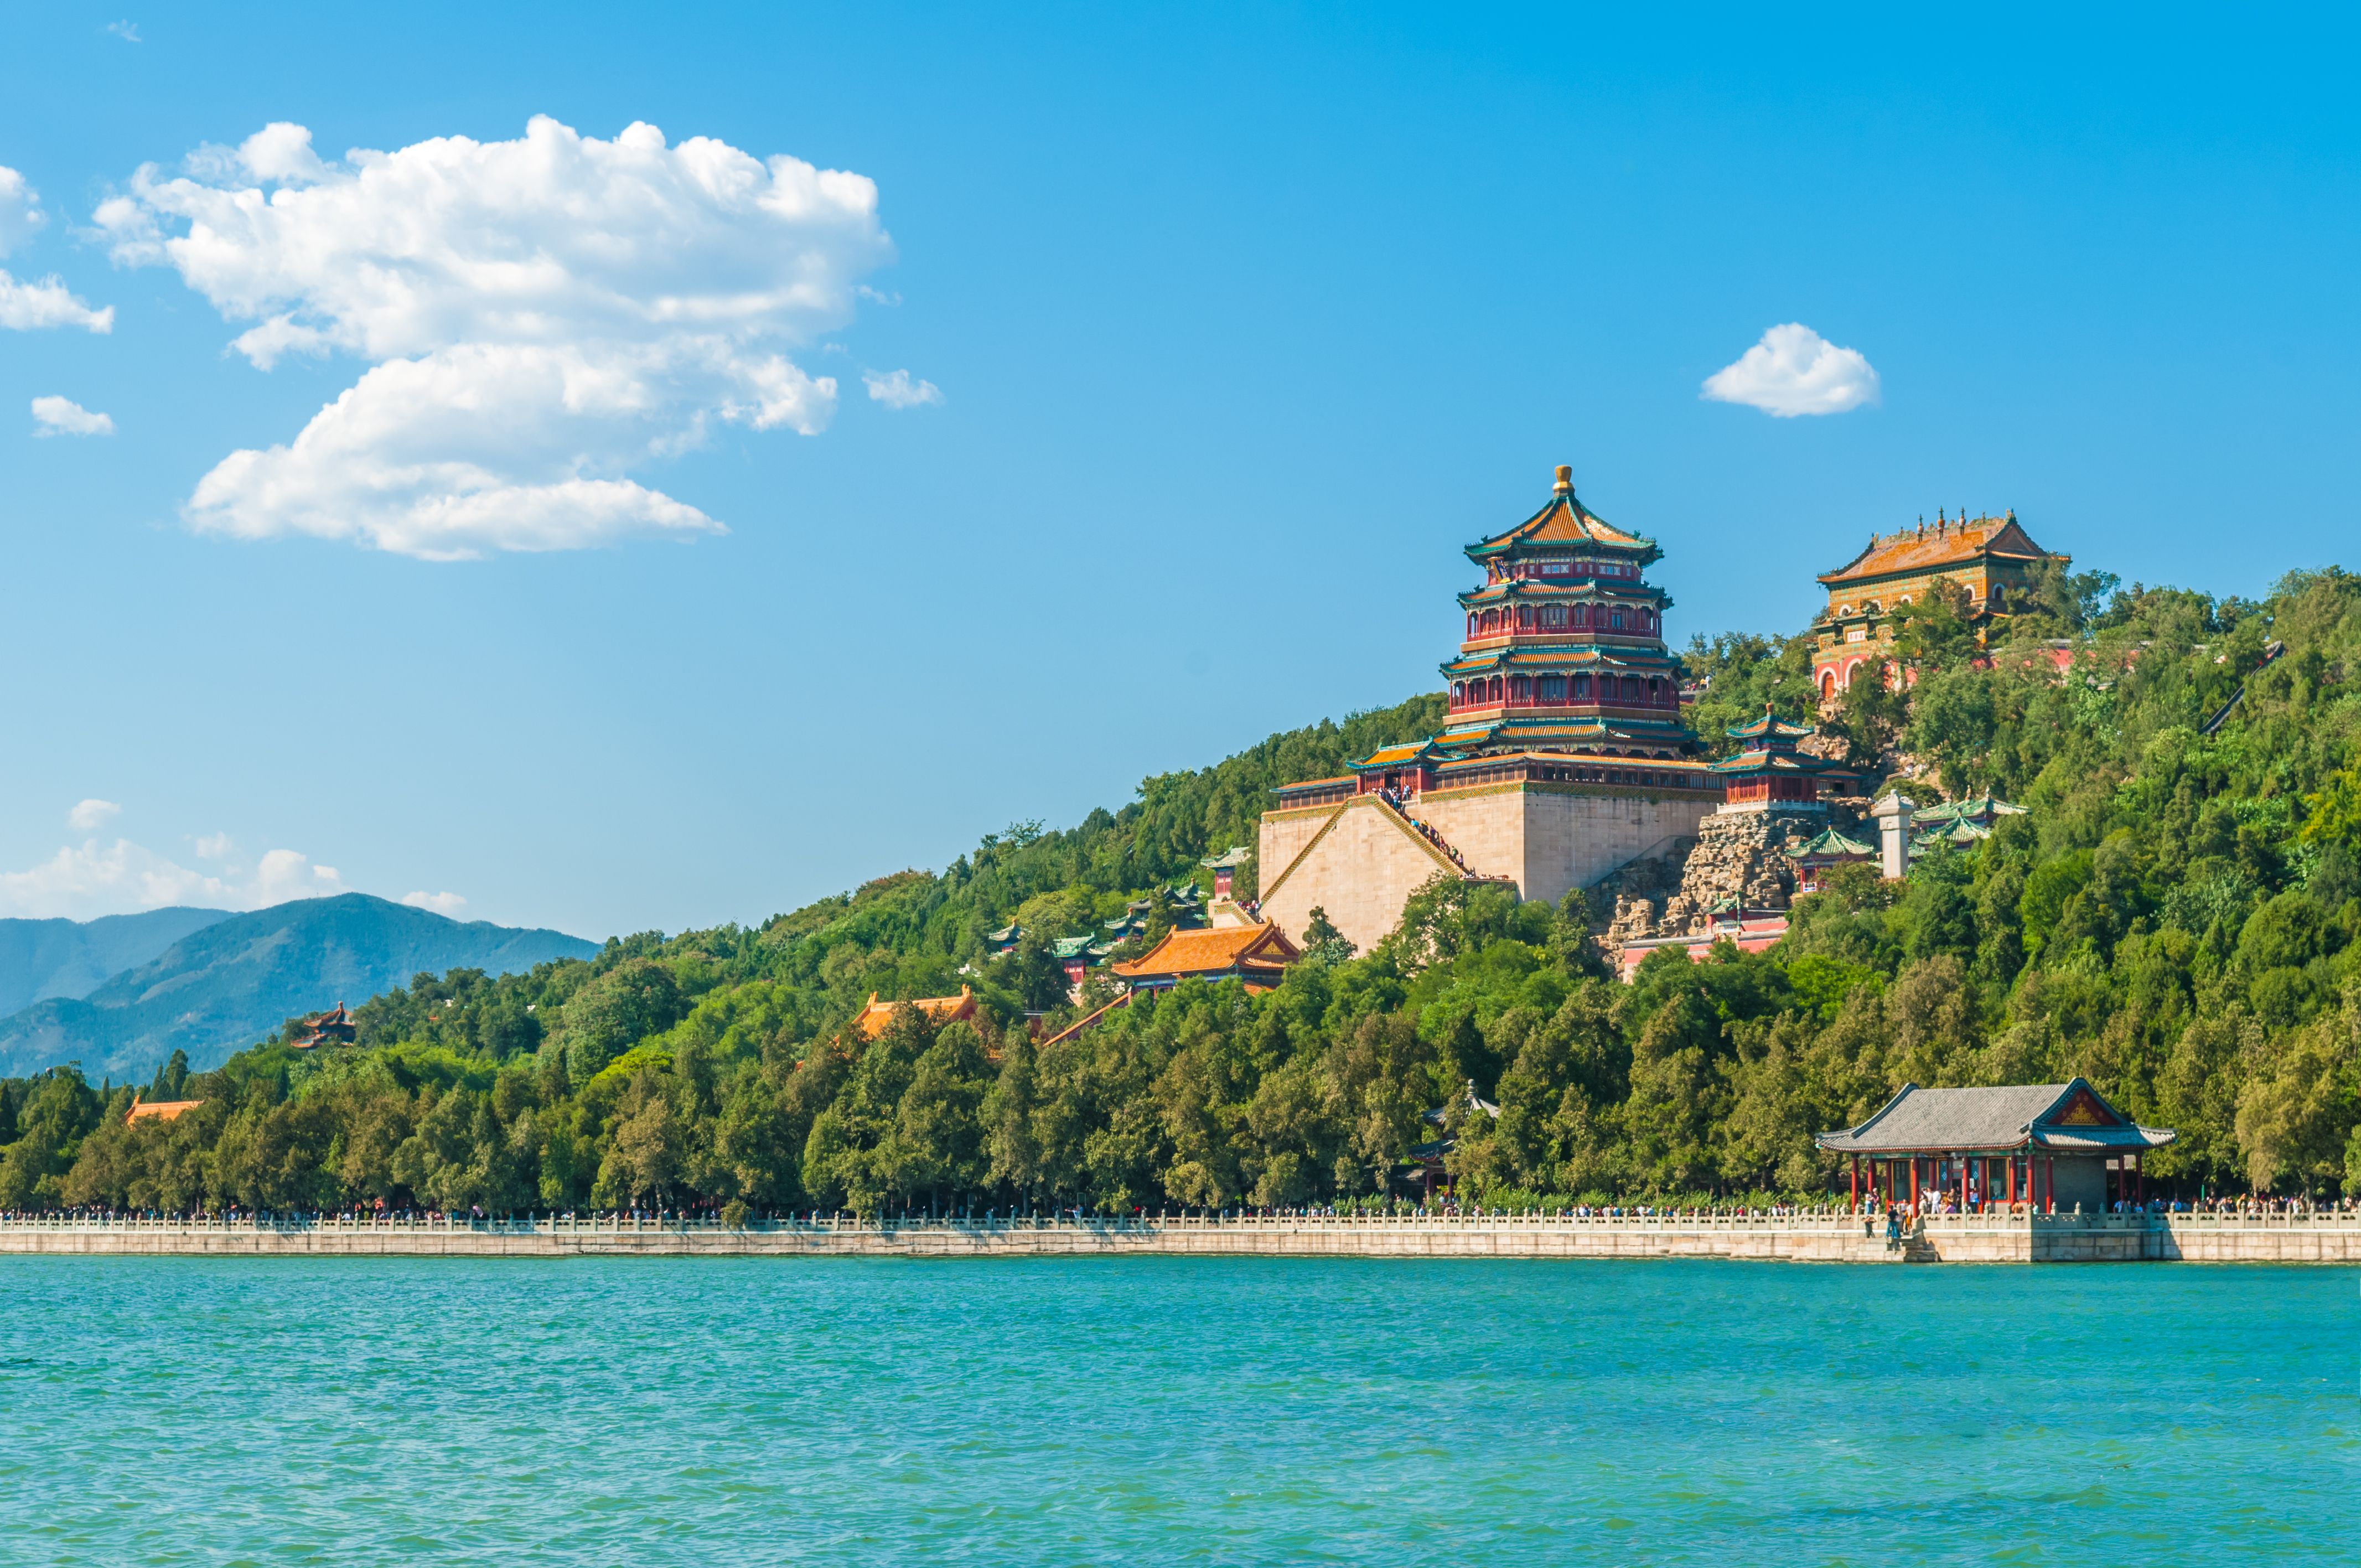 Summer Palace on the lake in Beijing